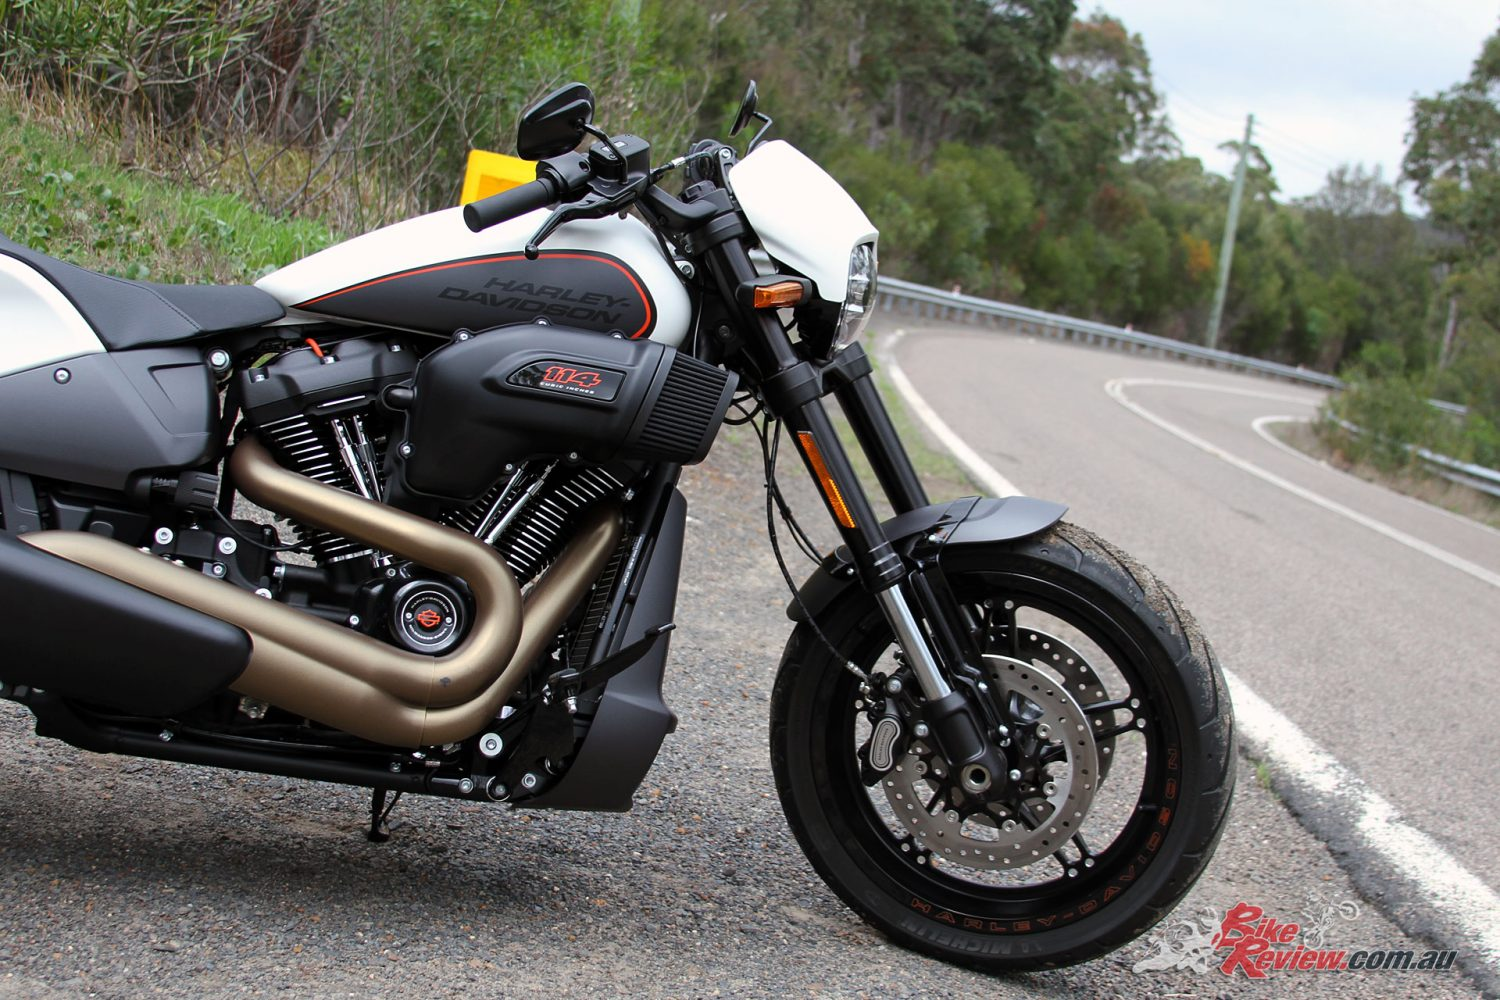 Review: 2019 Harley-Davidson FXDR 114 - Bike Review